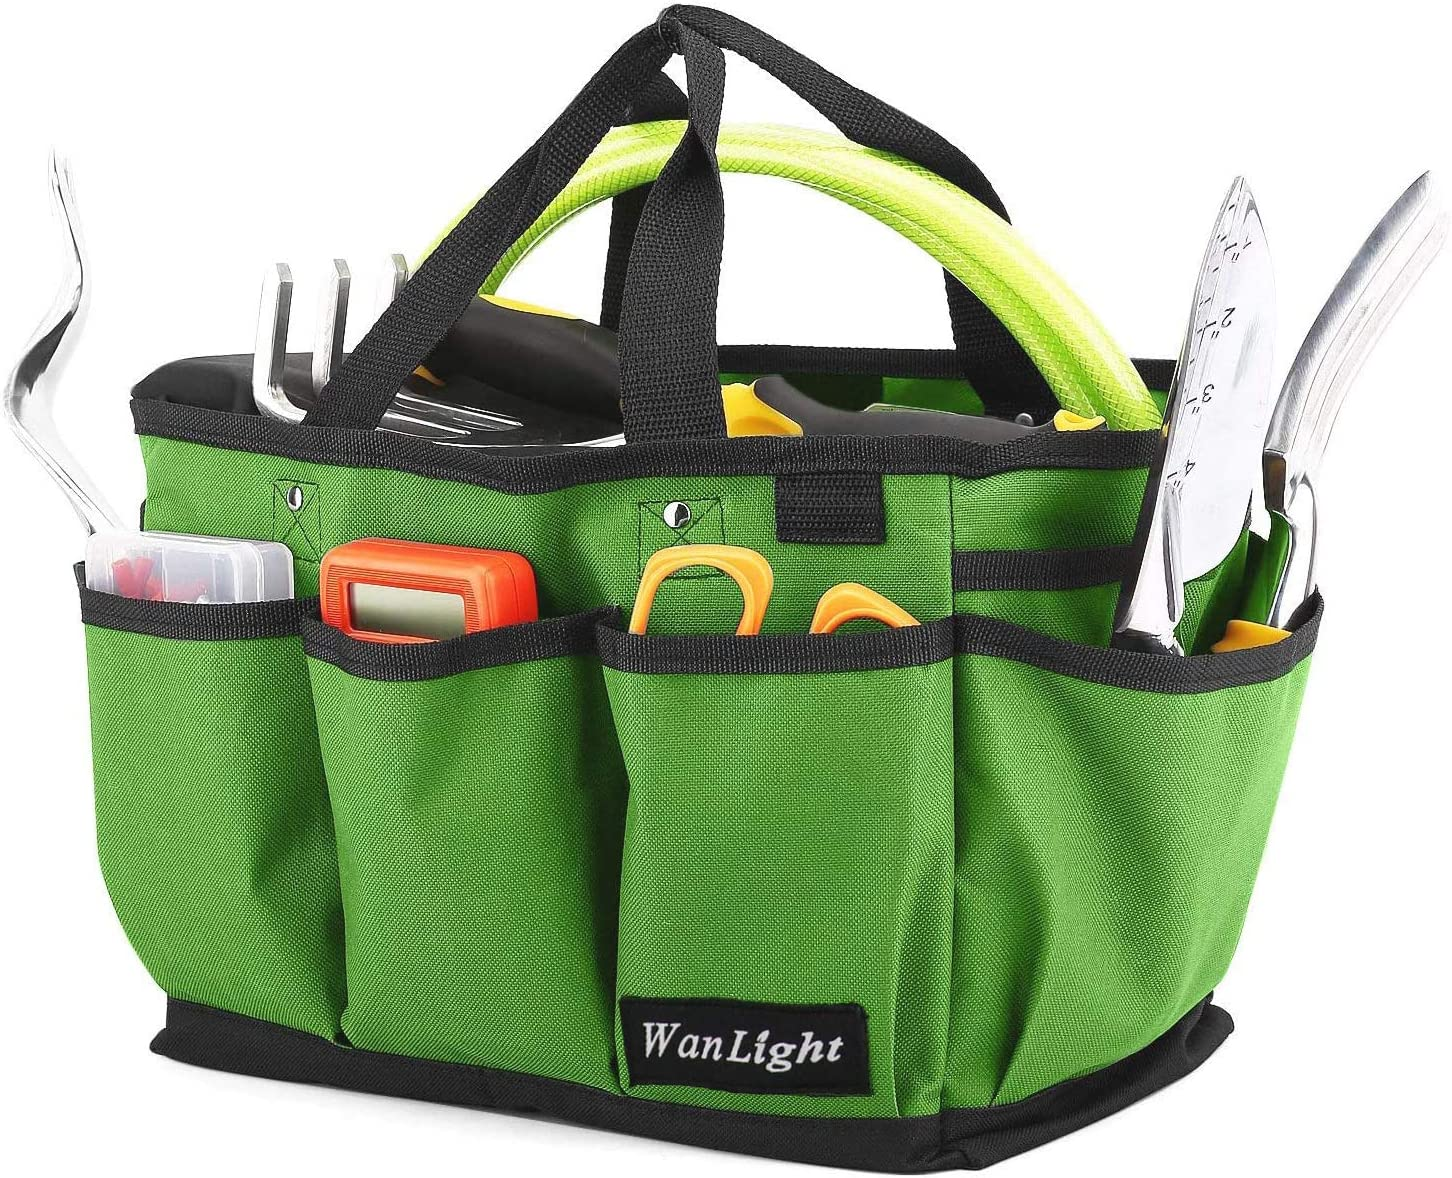 Garden Tote Large Organizer Bag Carrier Gardening Storage Tote Soft Handles Strap Garden Tool Storage Bag and Home Organizer with 13 Pockets, Wear-Resistant & Reusable, 15 Inch - Light Green